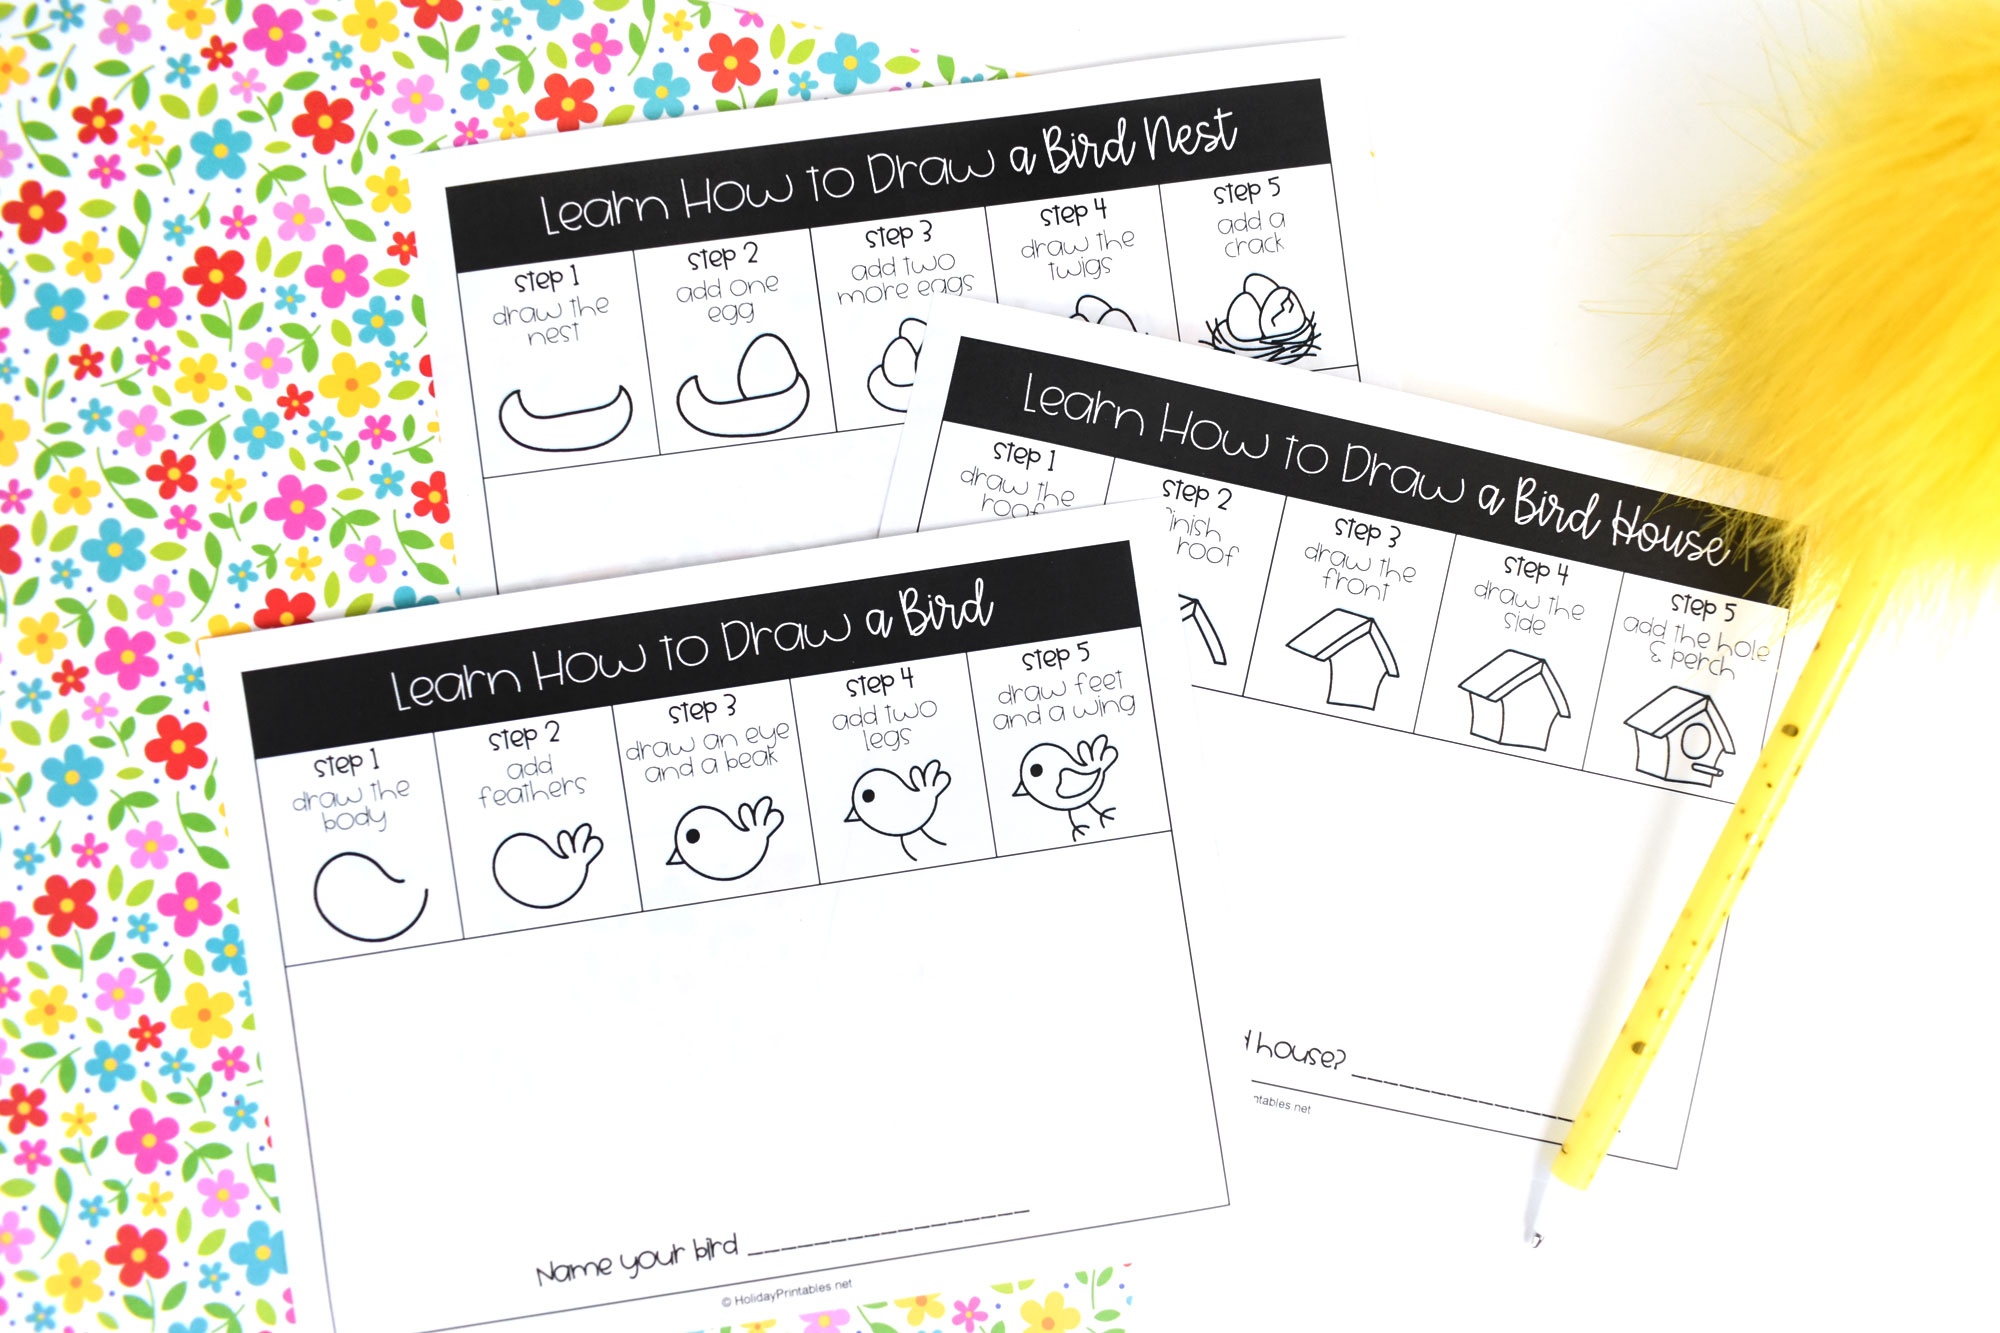 How to Draw A Bird Self Directed Drawing Pages for Kids | HolidayPrintables.net #printables #holidayprintables #springprintables #howtodraw #animaldrawings #drawabird #homeschoolprintables #educationprintables #weloveprintables